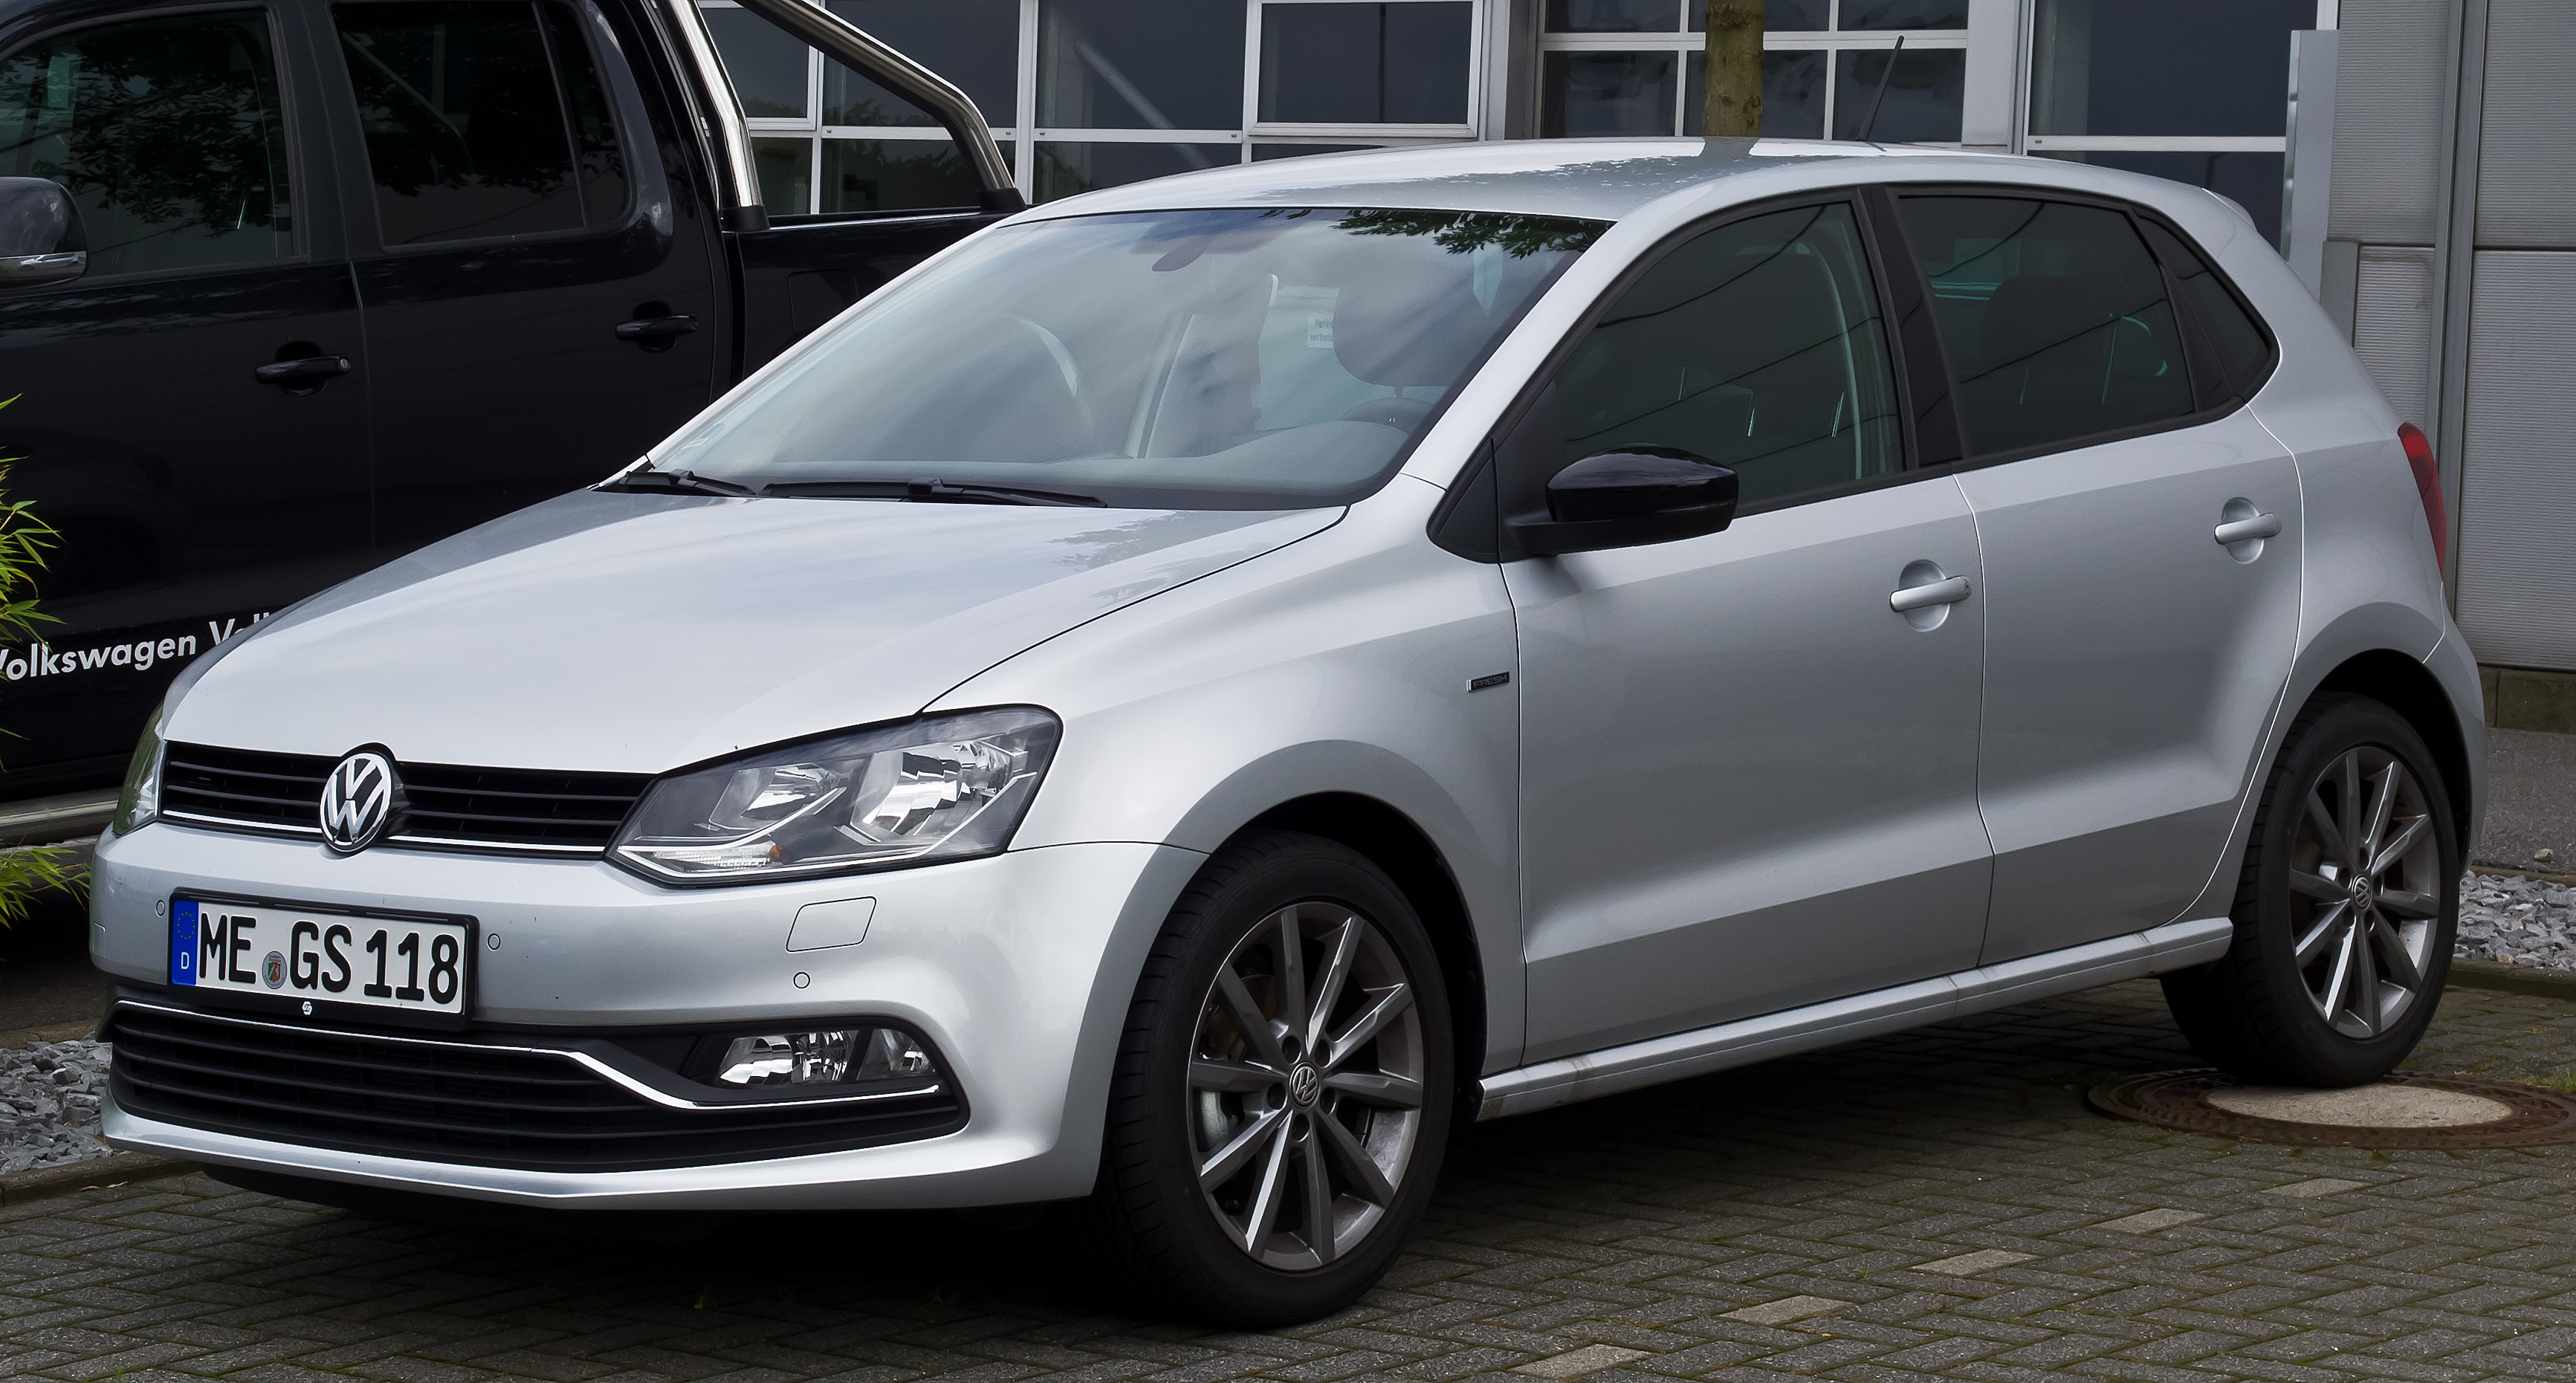 https://upload.wikimedia.org/wikipedia/commons/b/b1/VW_Polo_1.2_TSI_BlueMotion_Technology_Fresh_%28V,_Facelift%29_%E2%80%93_Frontansicht,_13._Juli_2014,_Velbert.jpg